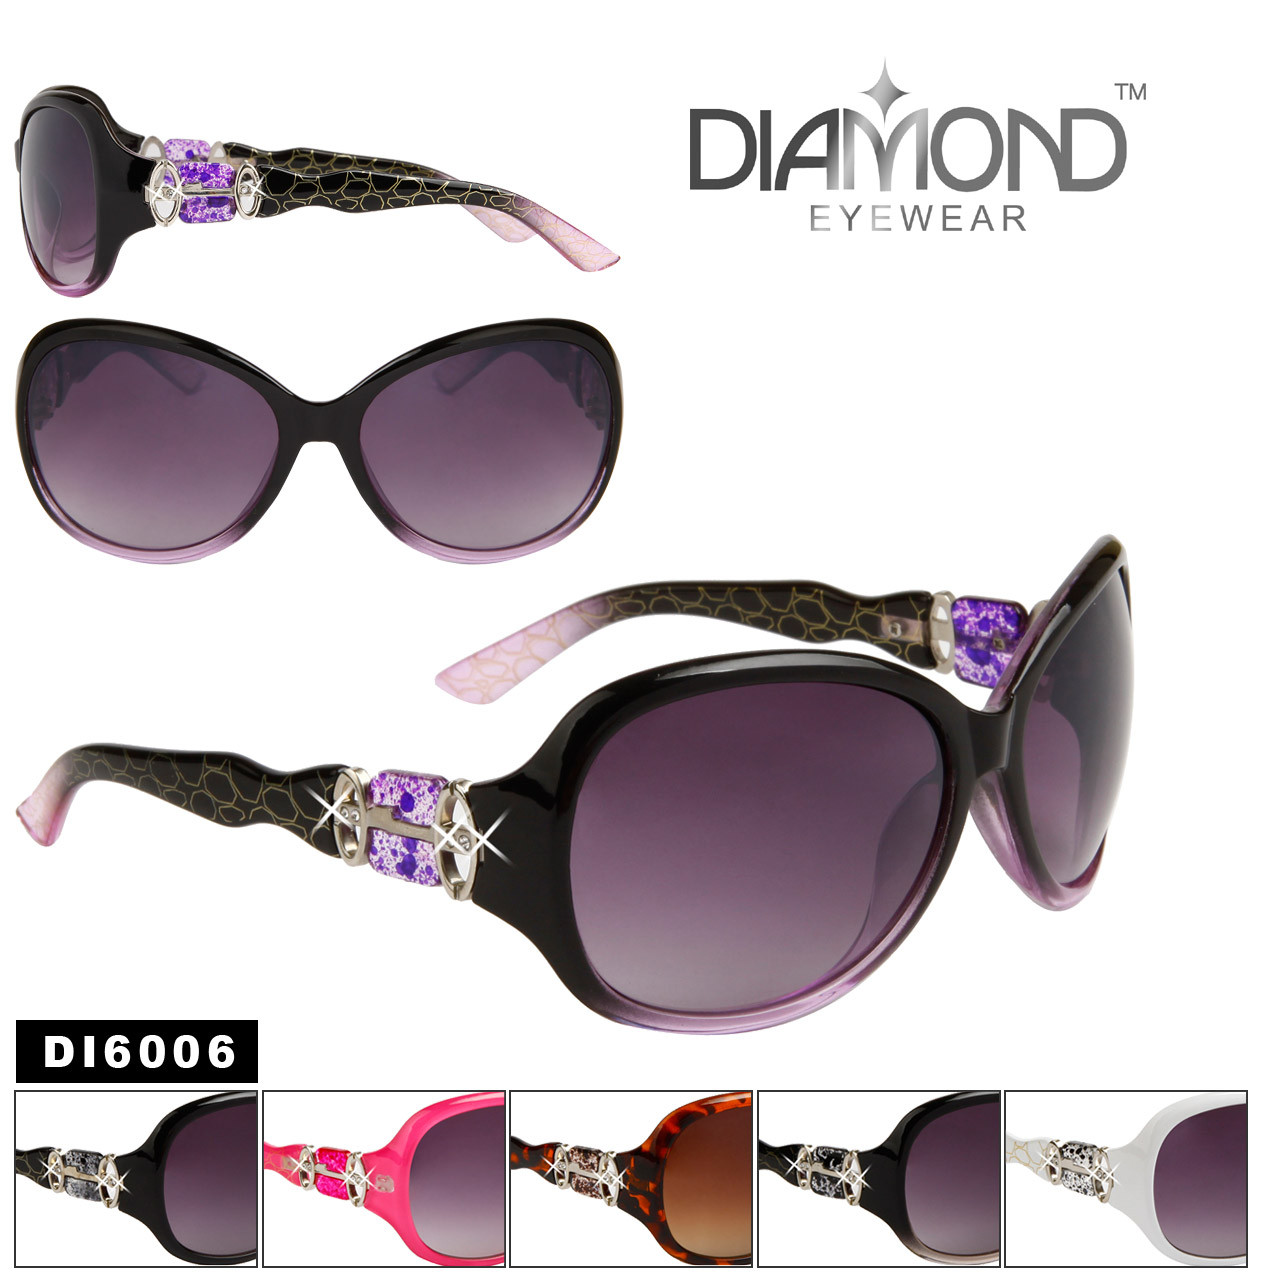 Wholesale Diamond™ Eyewear Sunglasses DI6006